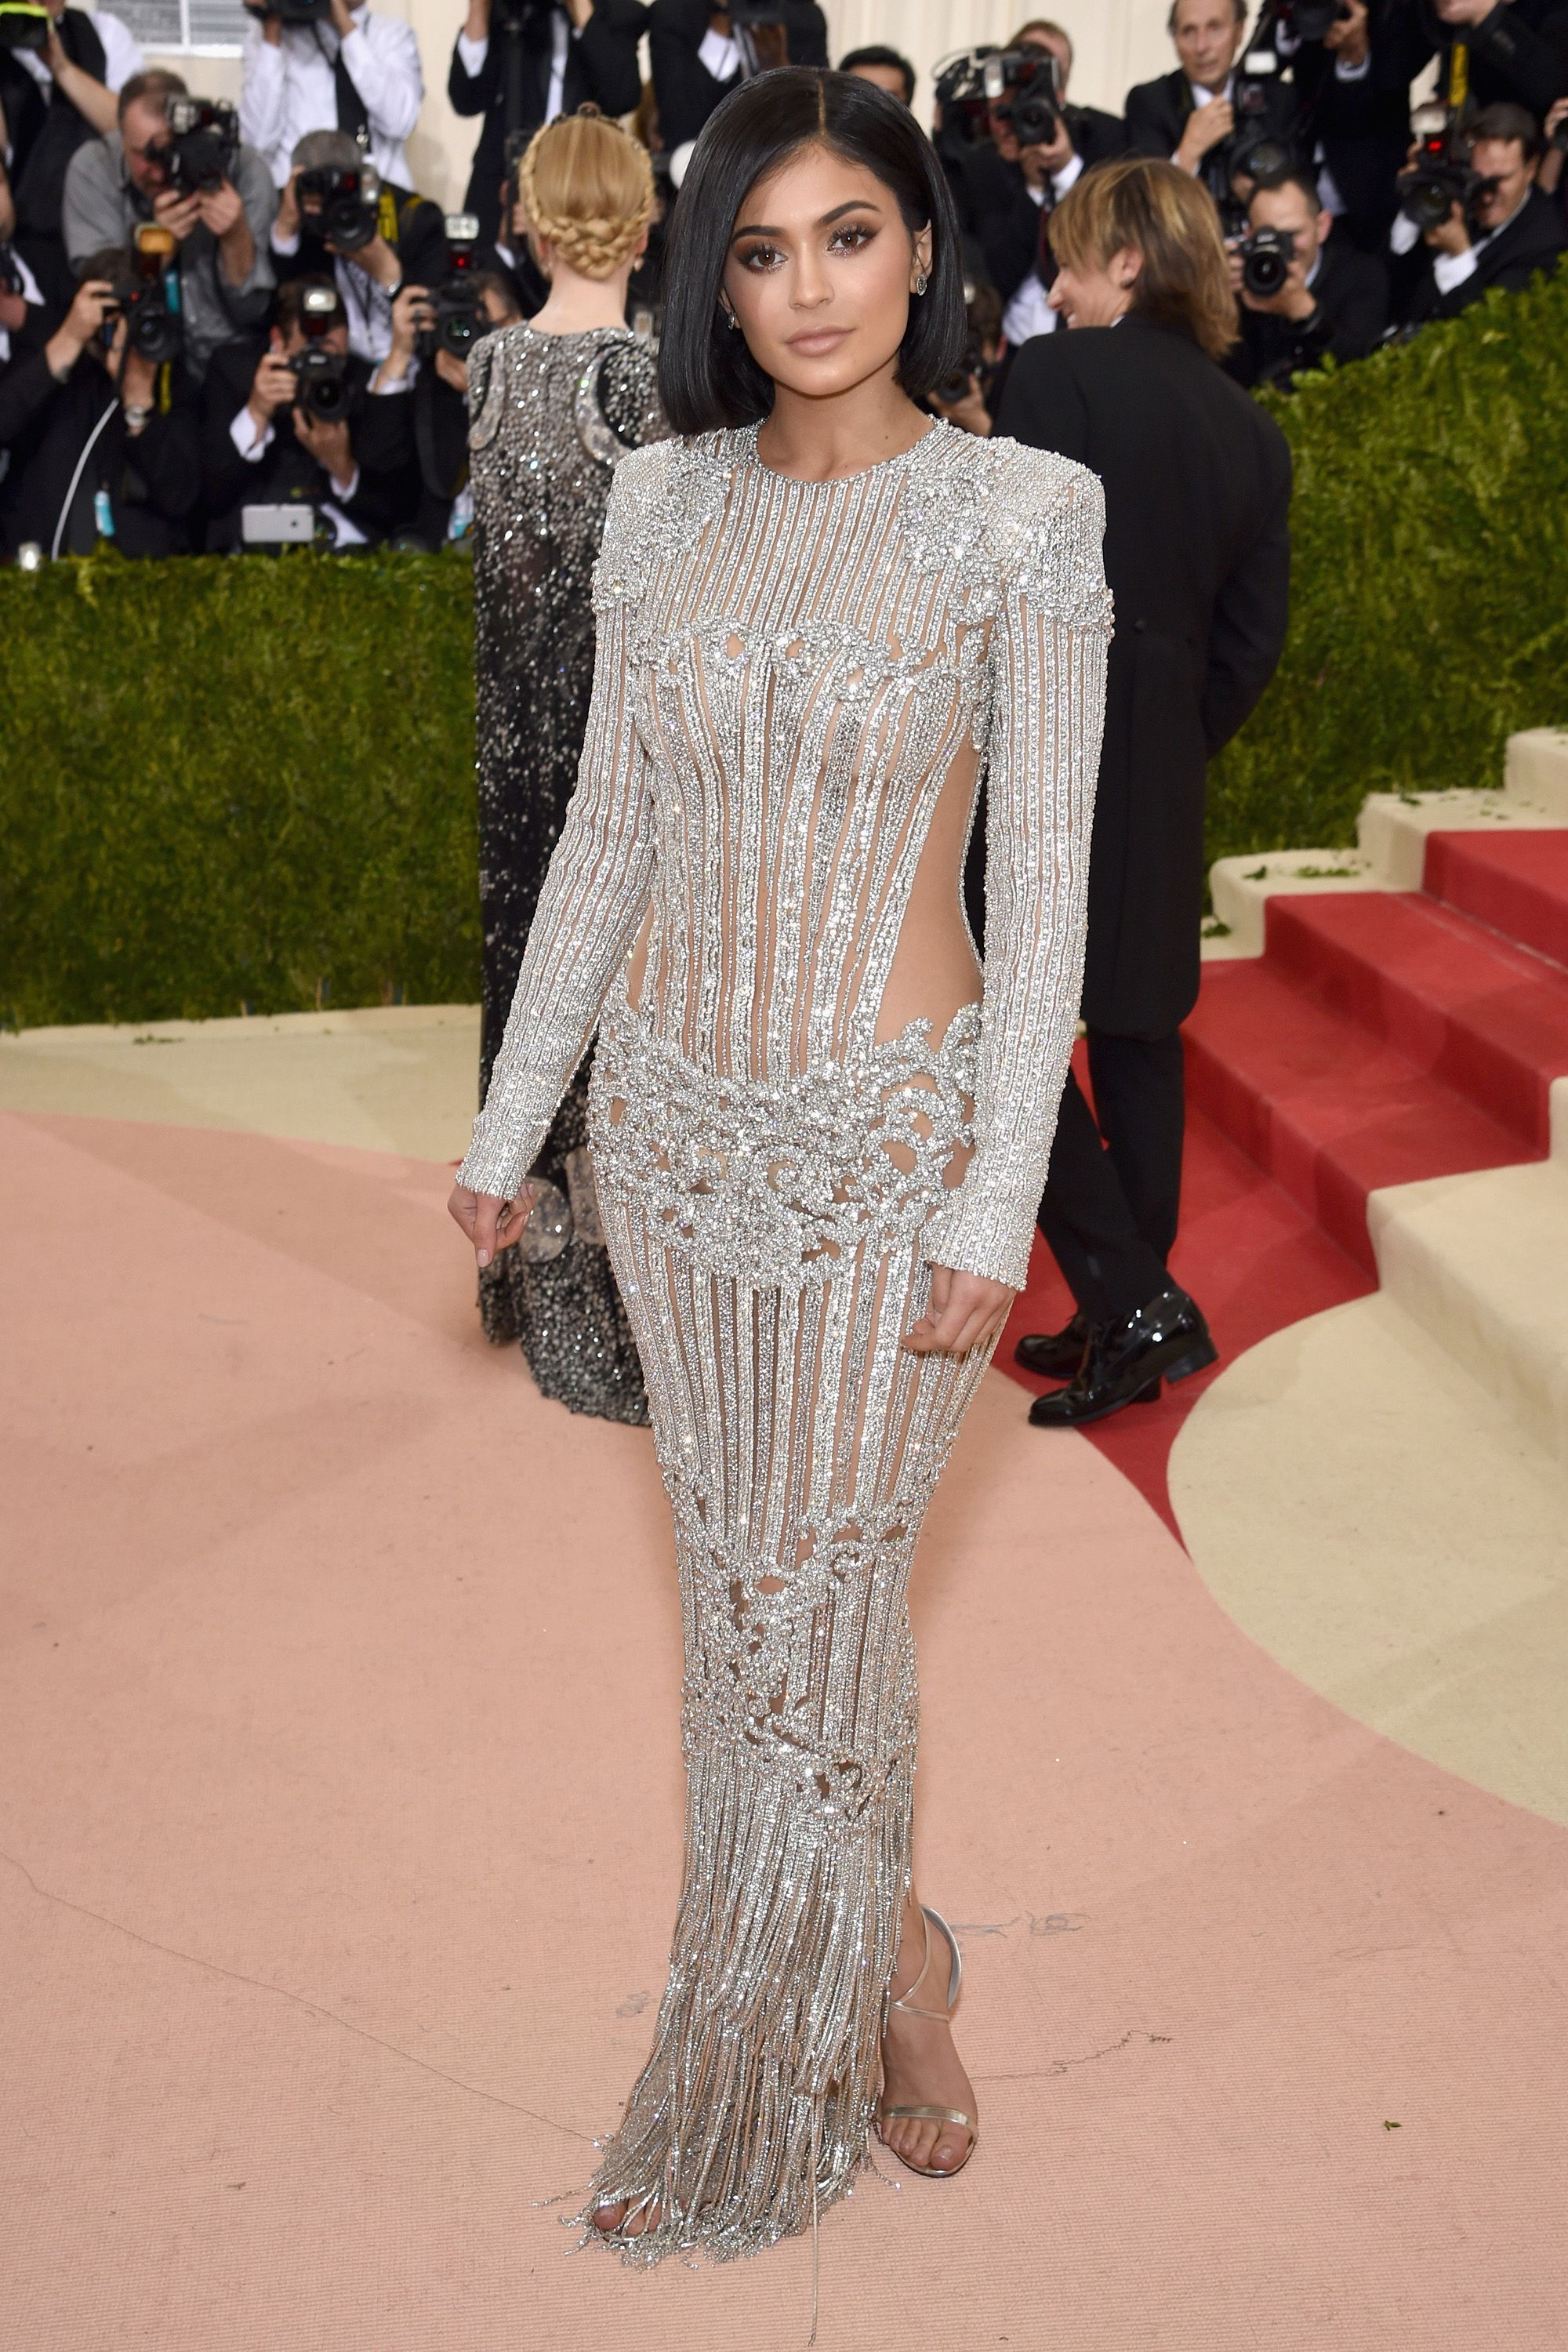 9d3ad2e9a7 2016 MET Gala  Manus x Machina  Fashion in an Age of Technology  - Kylie  Jenner in Balmain